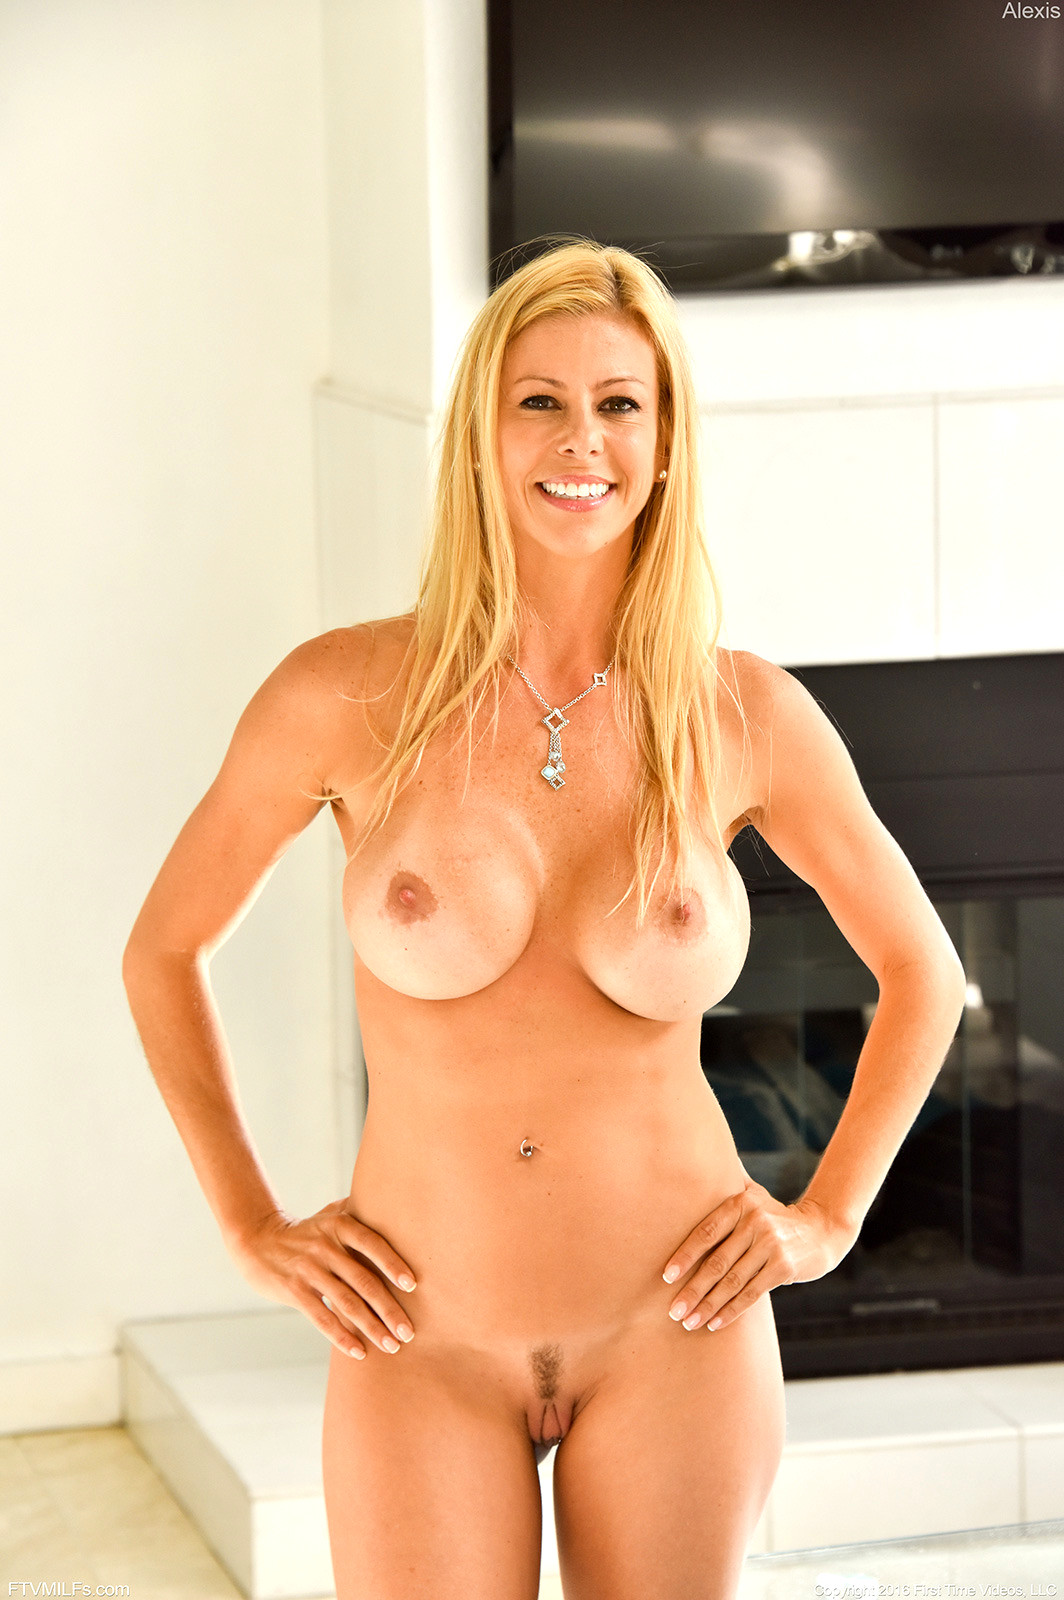 Babe Today Ftv Milfs Alexis Fawx Tuesday Big Tits Cyberxxx -8646